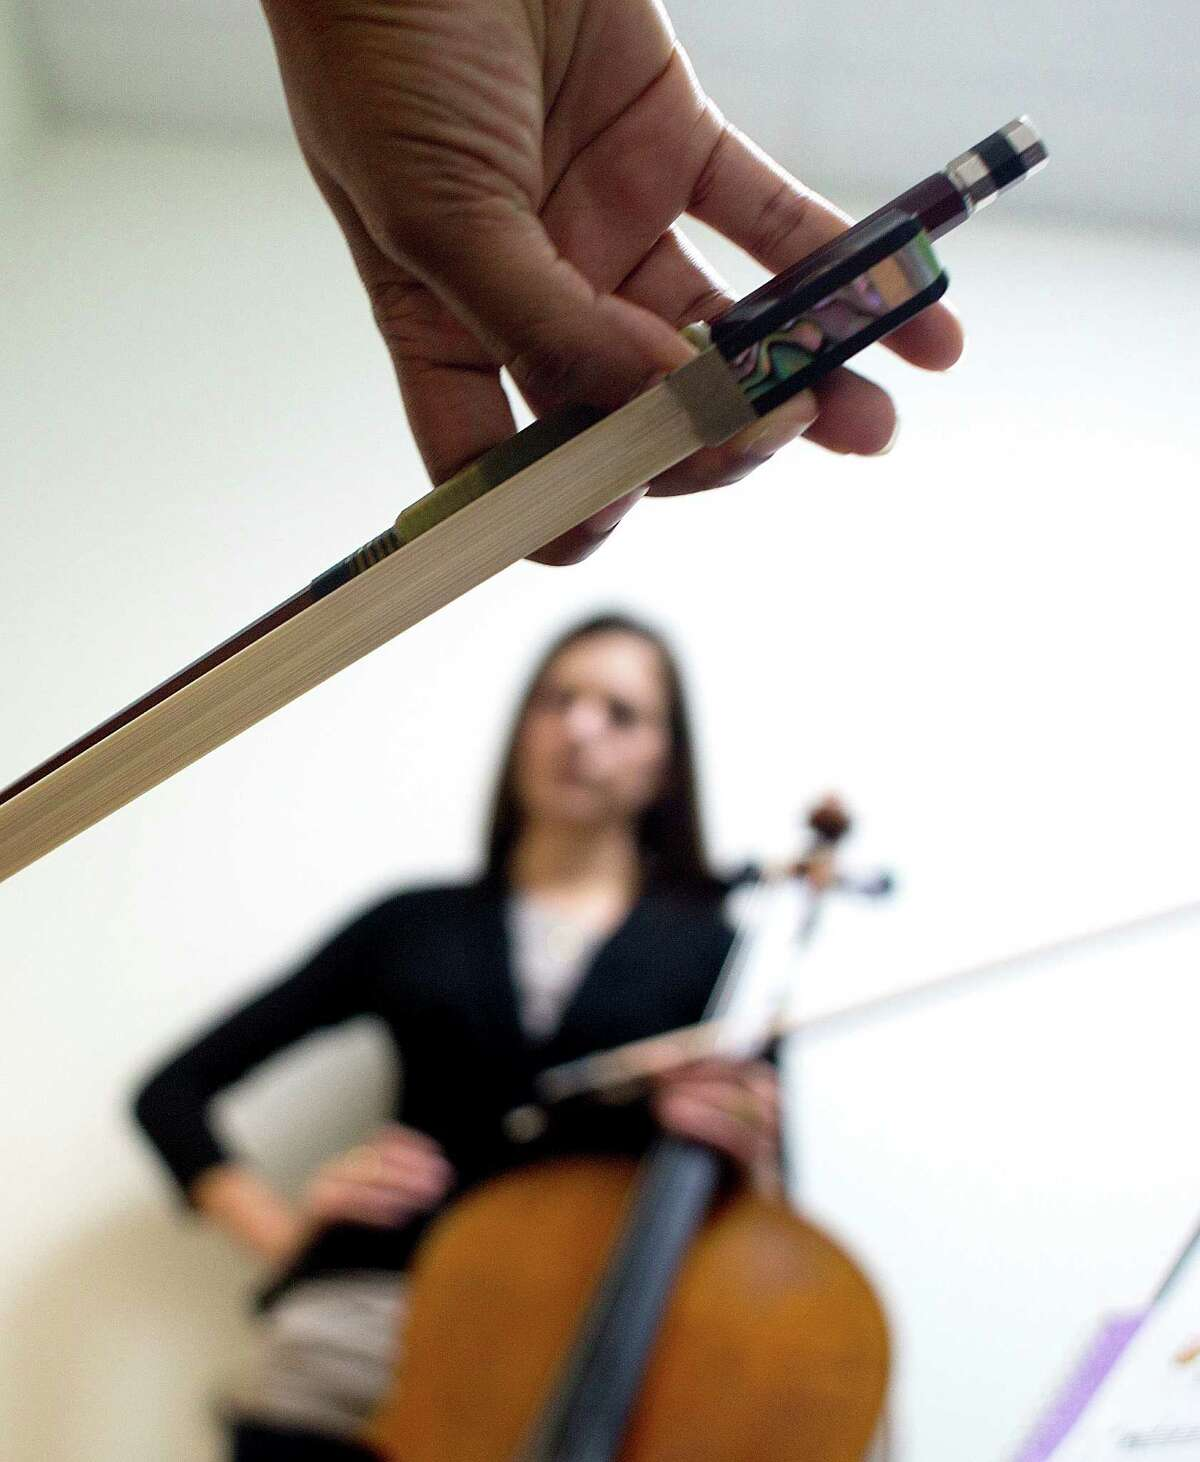 Instructor Annamarie Reader listens as a student practices at the Vivaldi Music Academy in Bellaire.